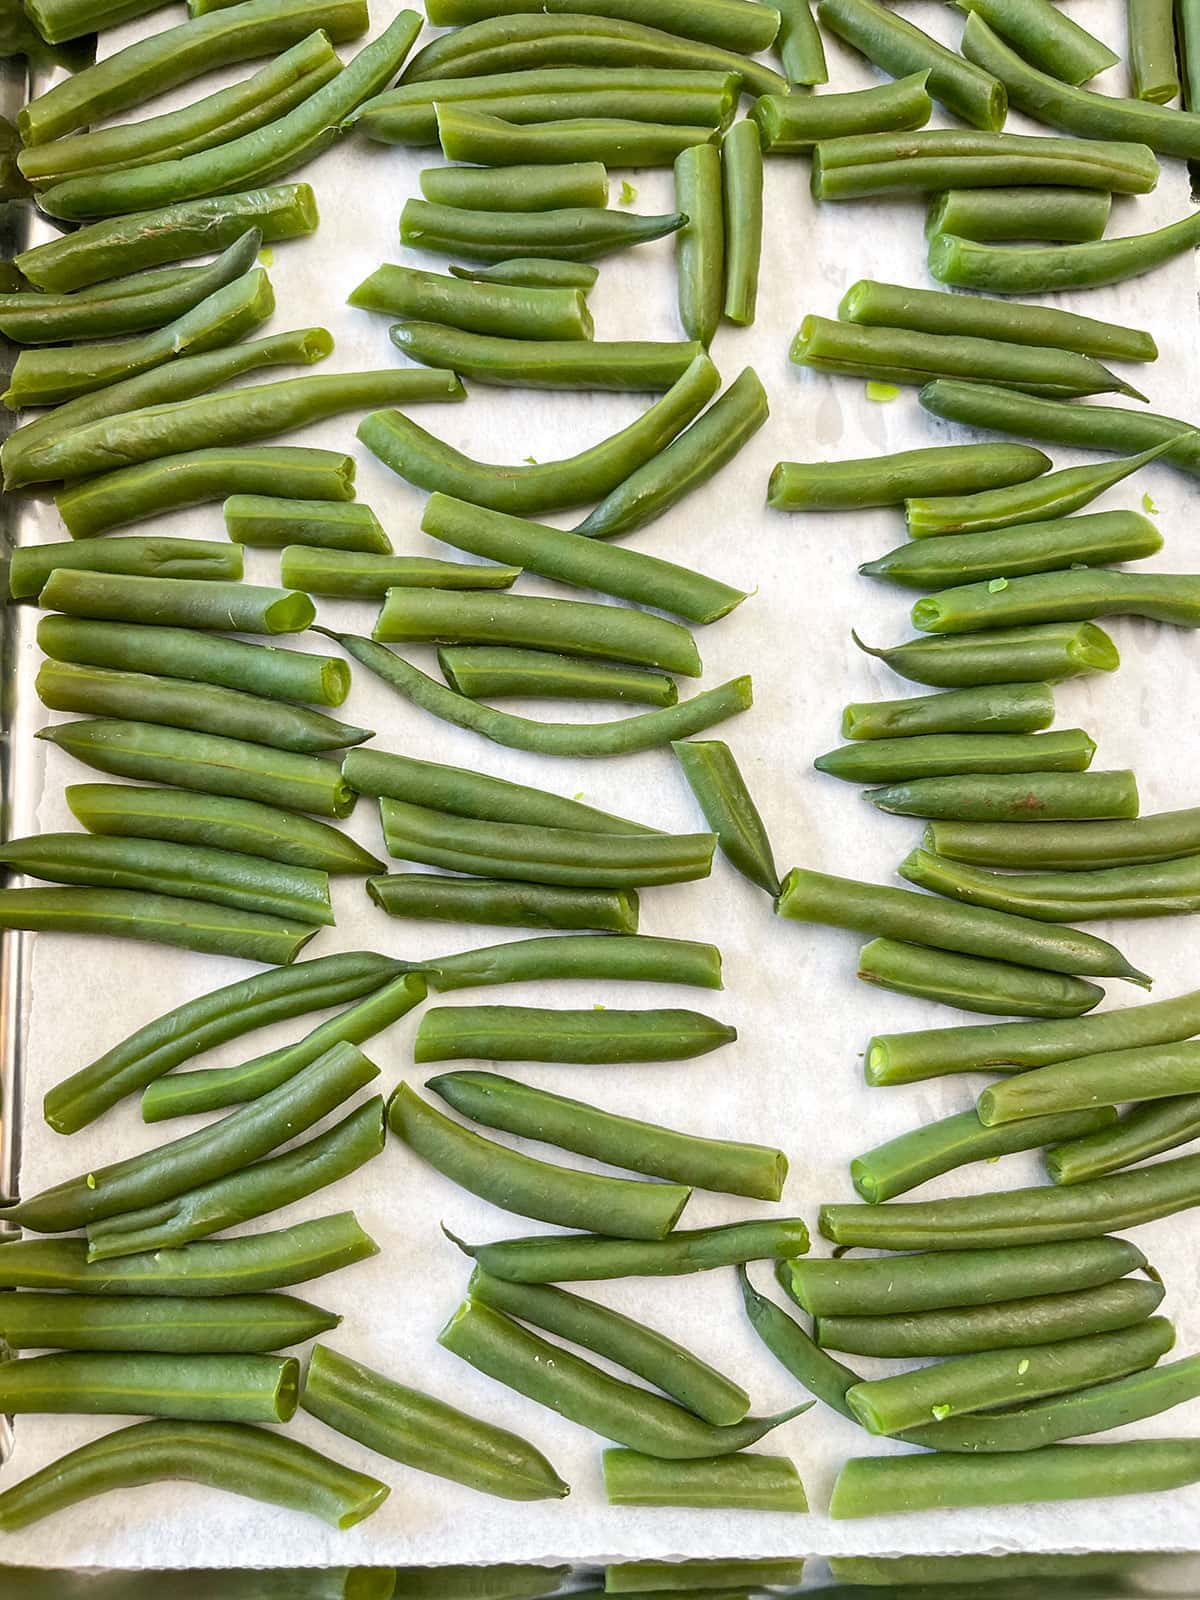 blanched green beans on a baking sheet in a single layer